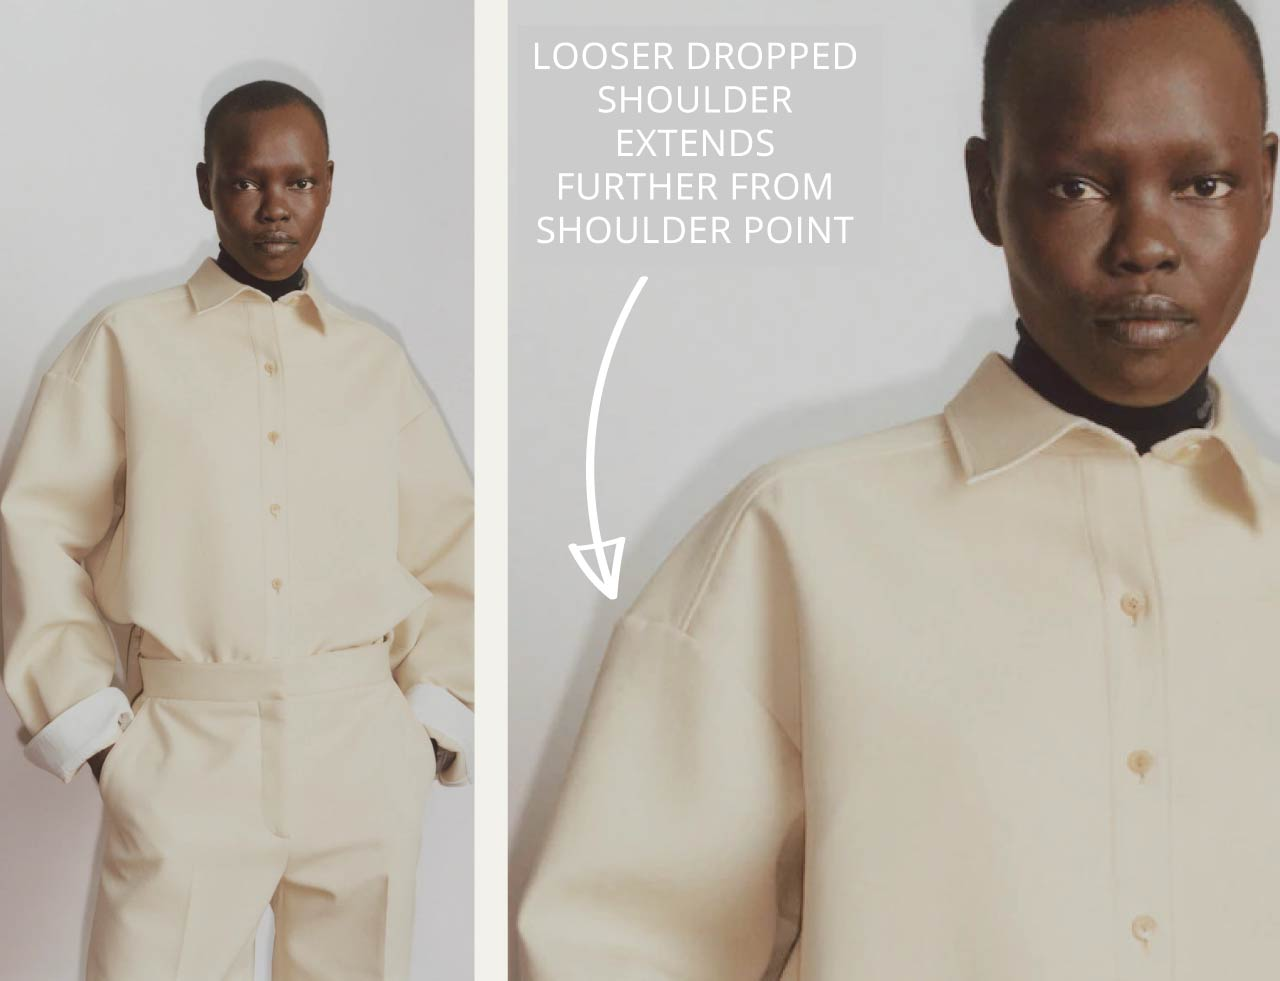 Slight Dropped Shoulders at The Row | The Cutting Class. Looser dropped shoulder styles extend further past the shoulder point on cream shirt.